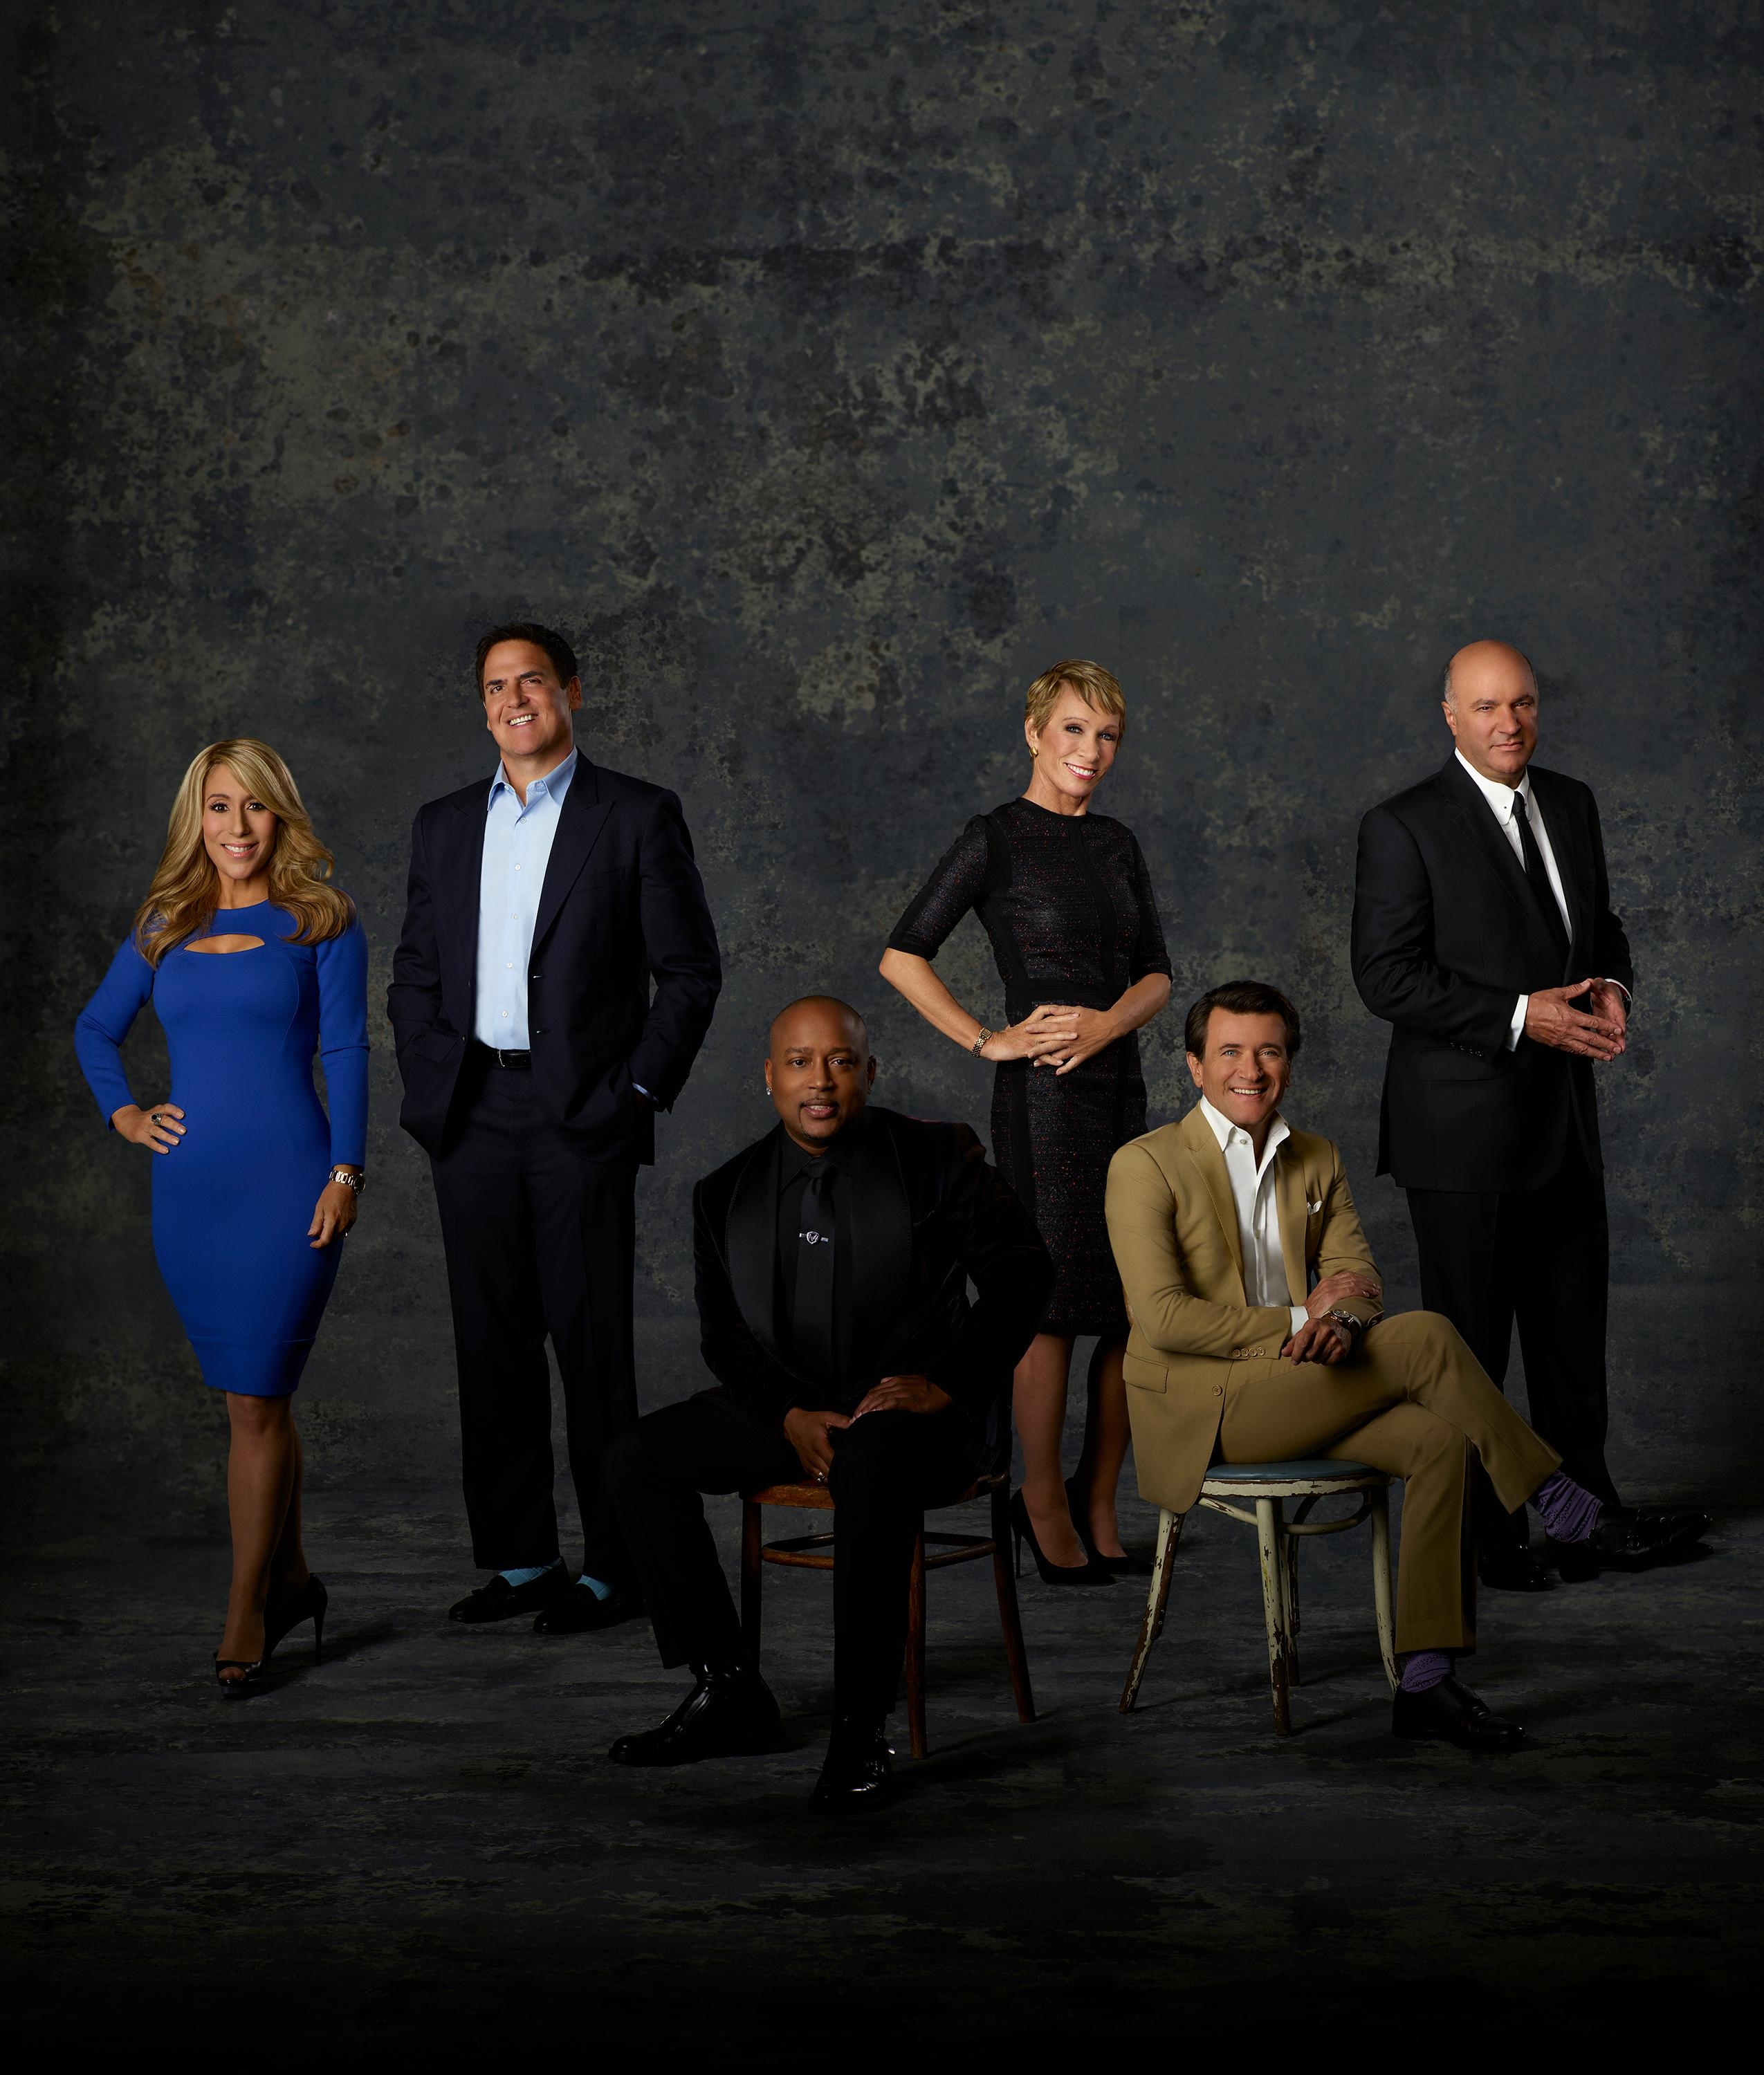 Shark Tank will be rolling into town to host an open casting call on Tuesday June 5 at Studio Xfinity.  (Image: ABC/Bob D'Amico)